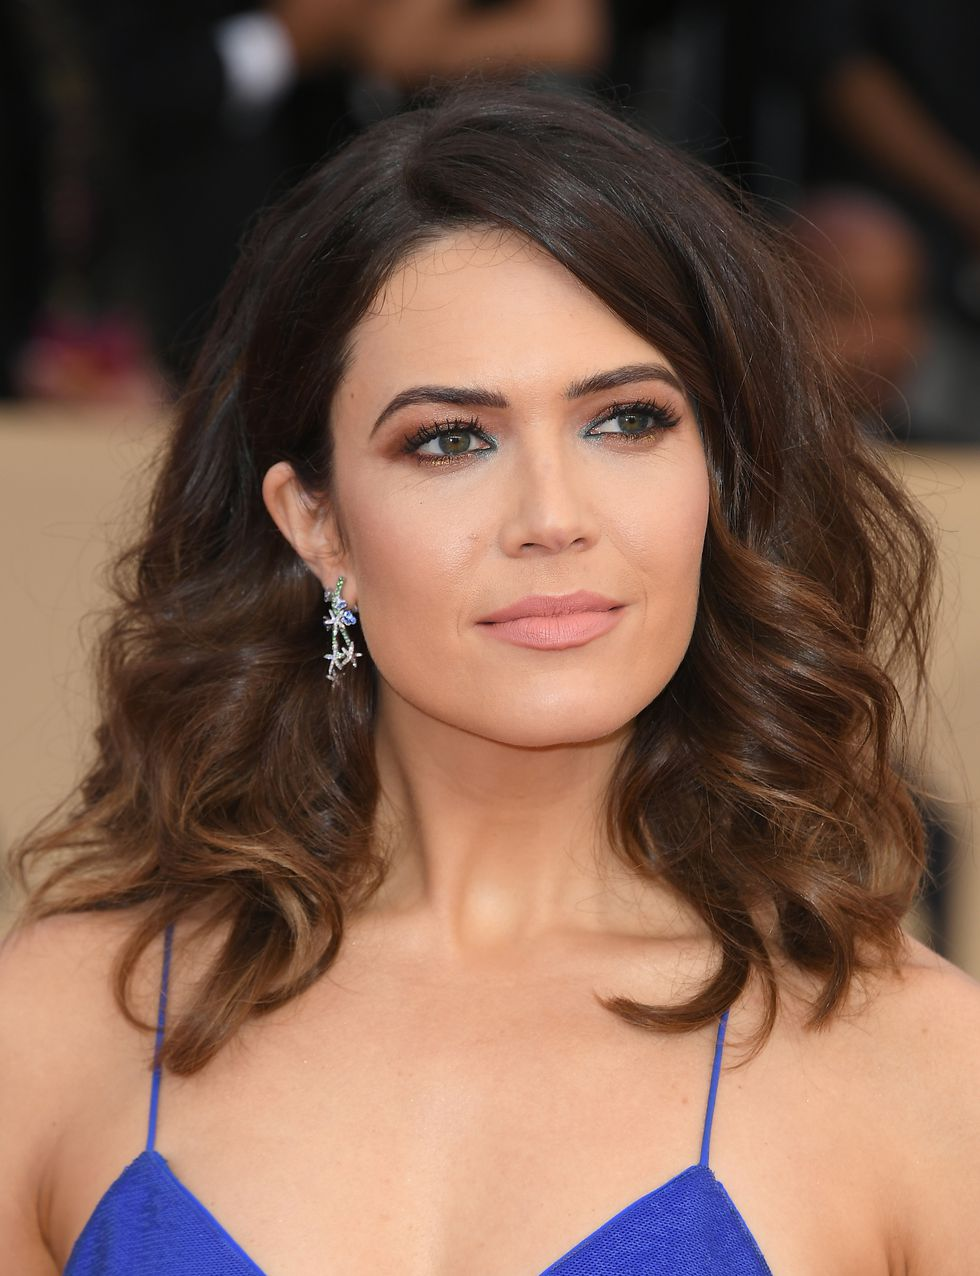 SAG Awards Beauty Mandy Moore